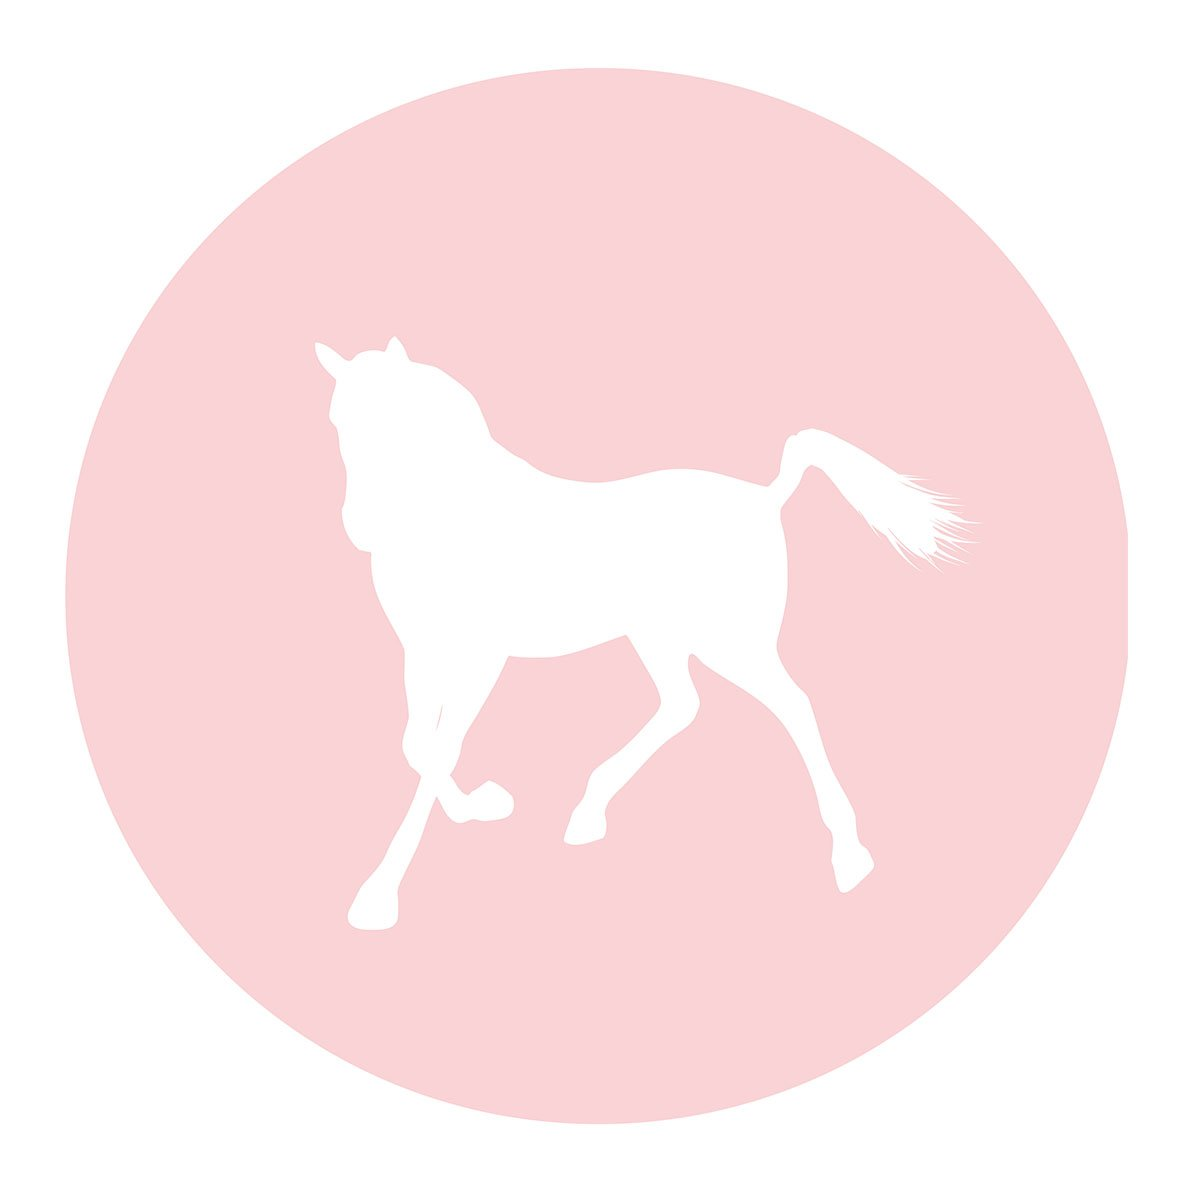 MAGJUCHE Pink Horse Stickers, Farm Animal, Boy Birthday or Baby Shower Party Supply Labels, 2 Inch, 40-Pack